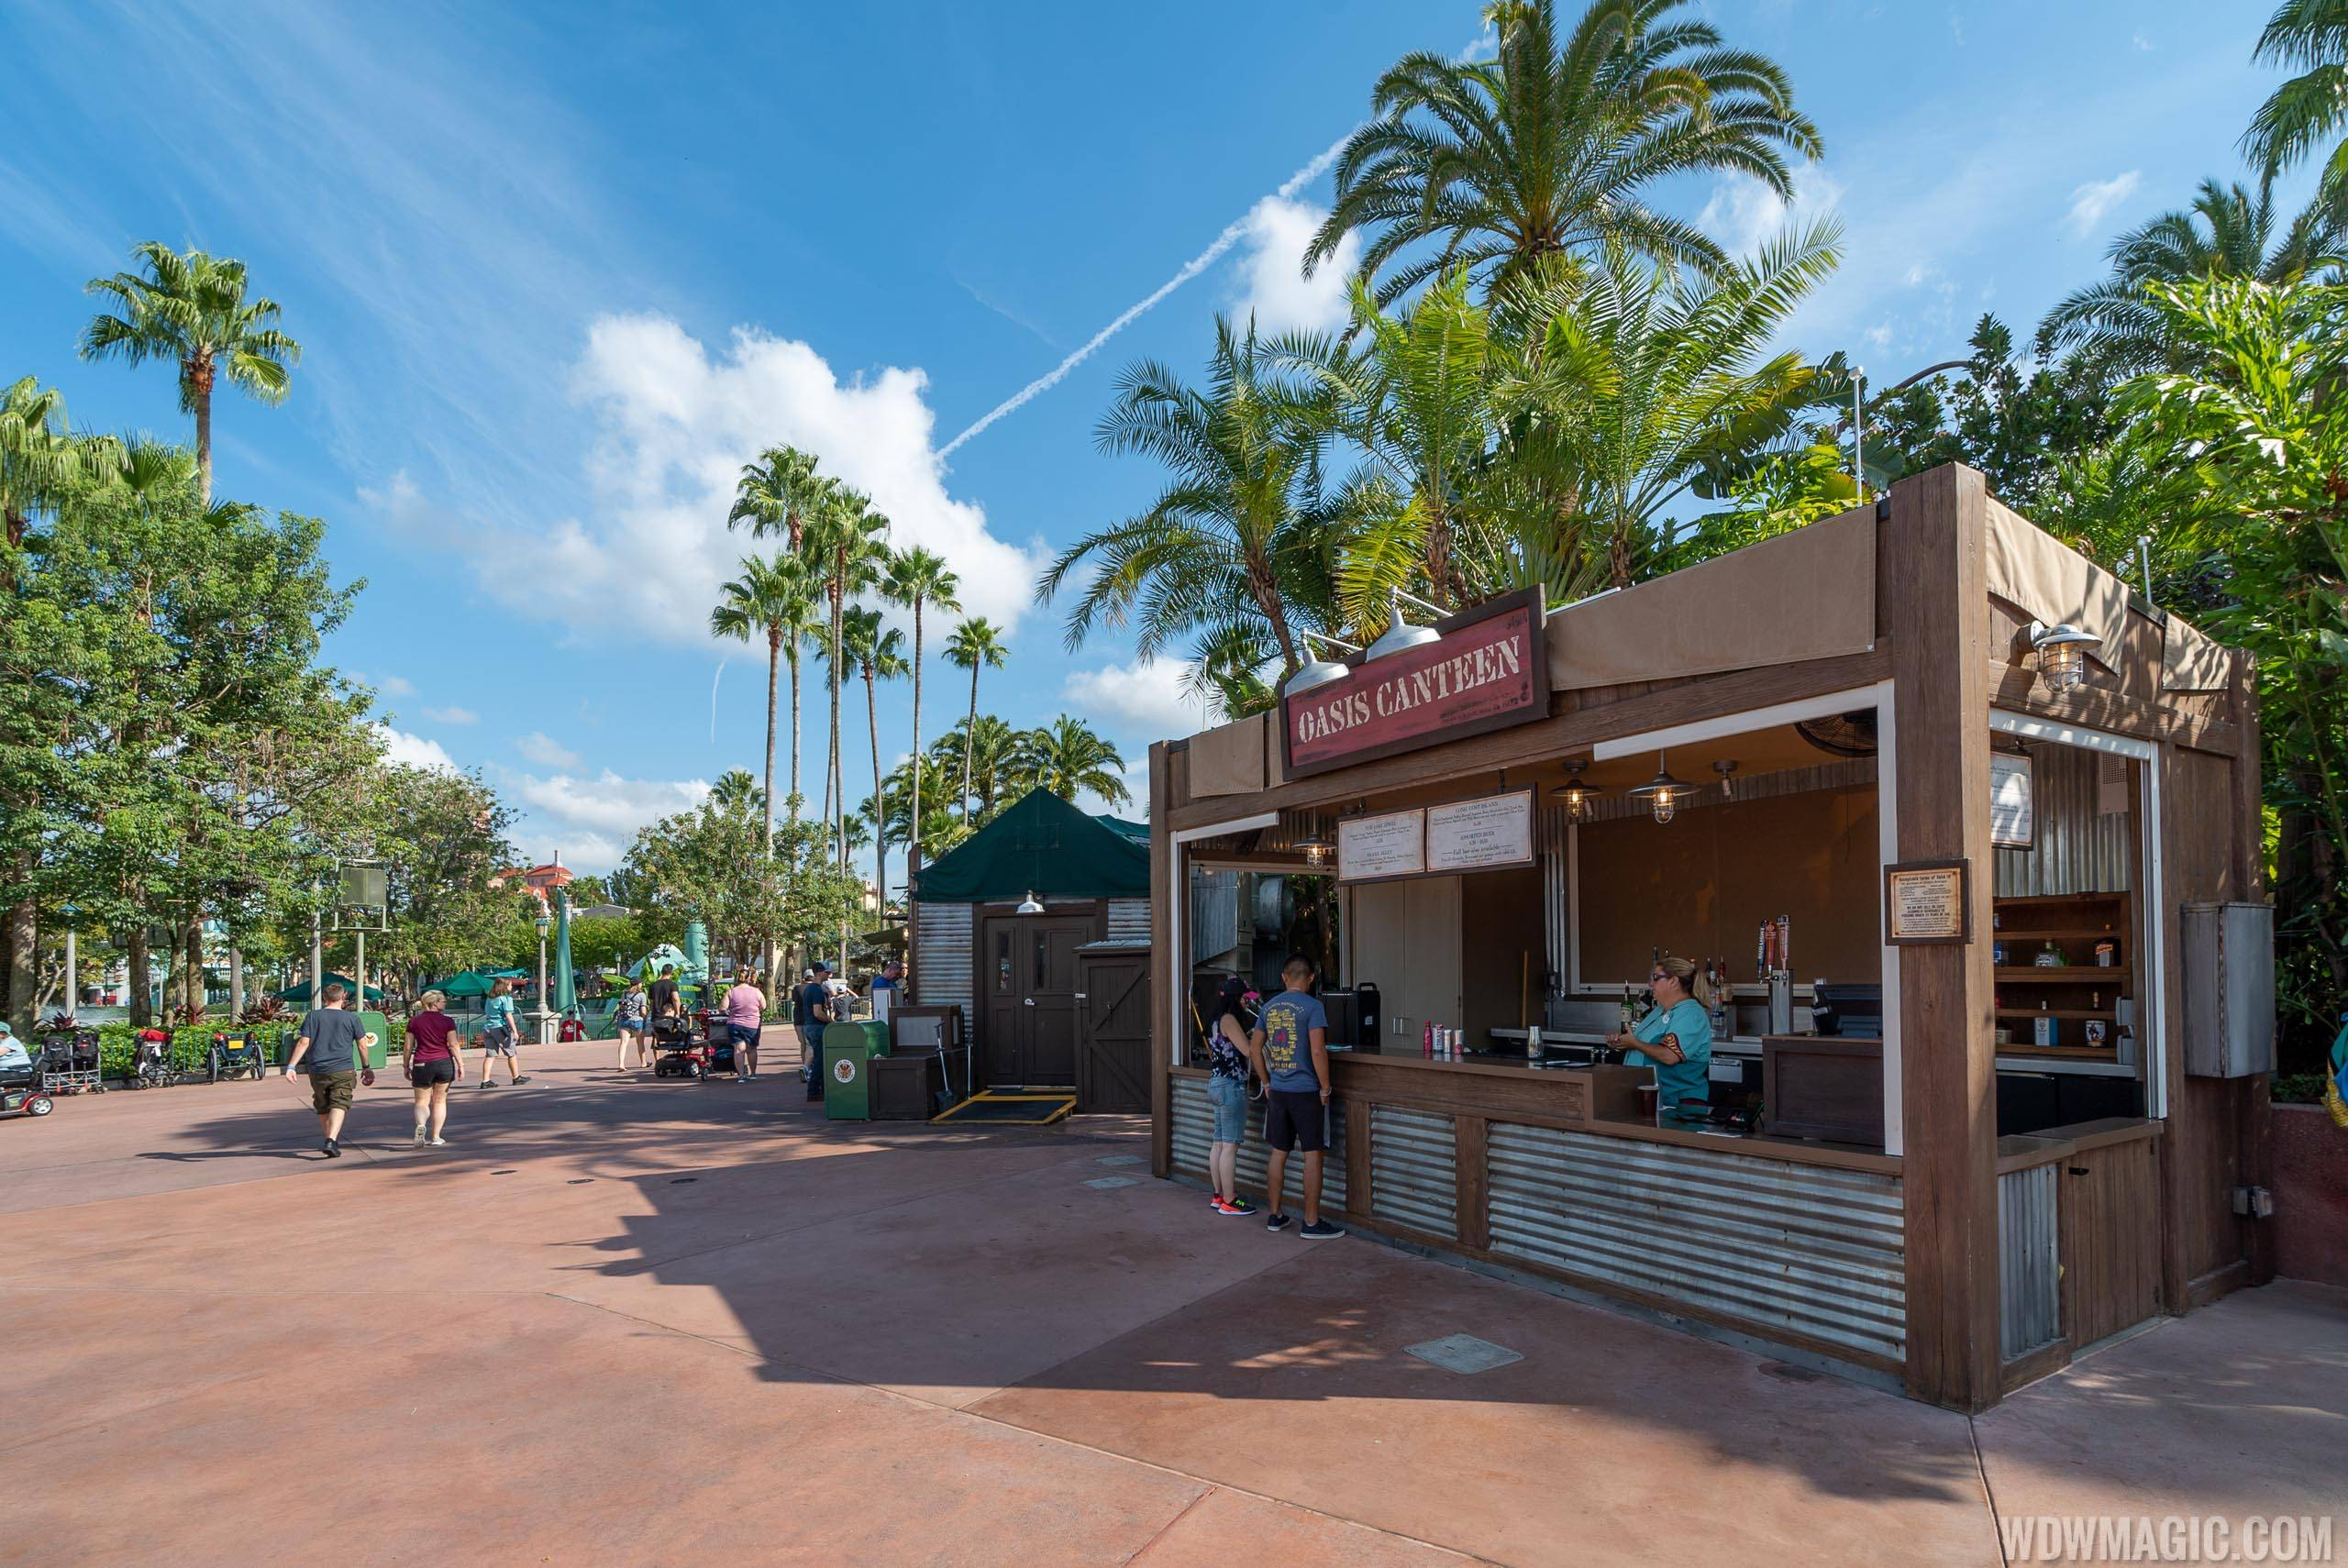 Oasis Canteen overview